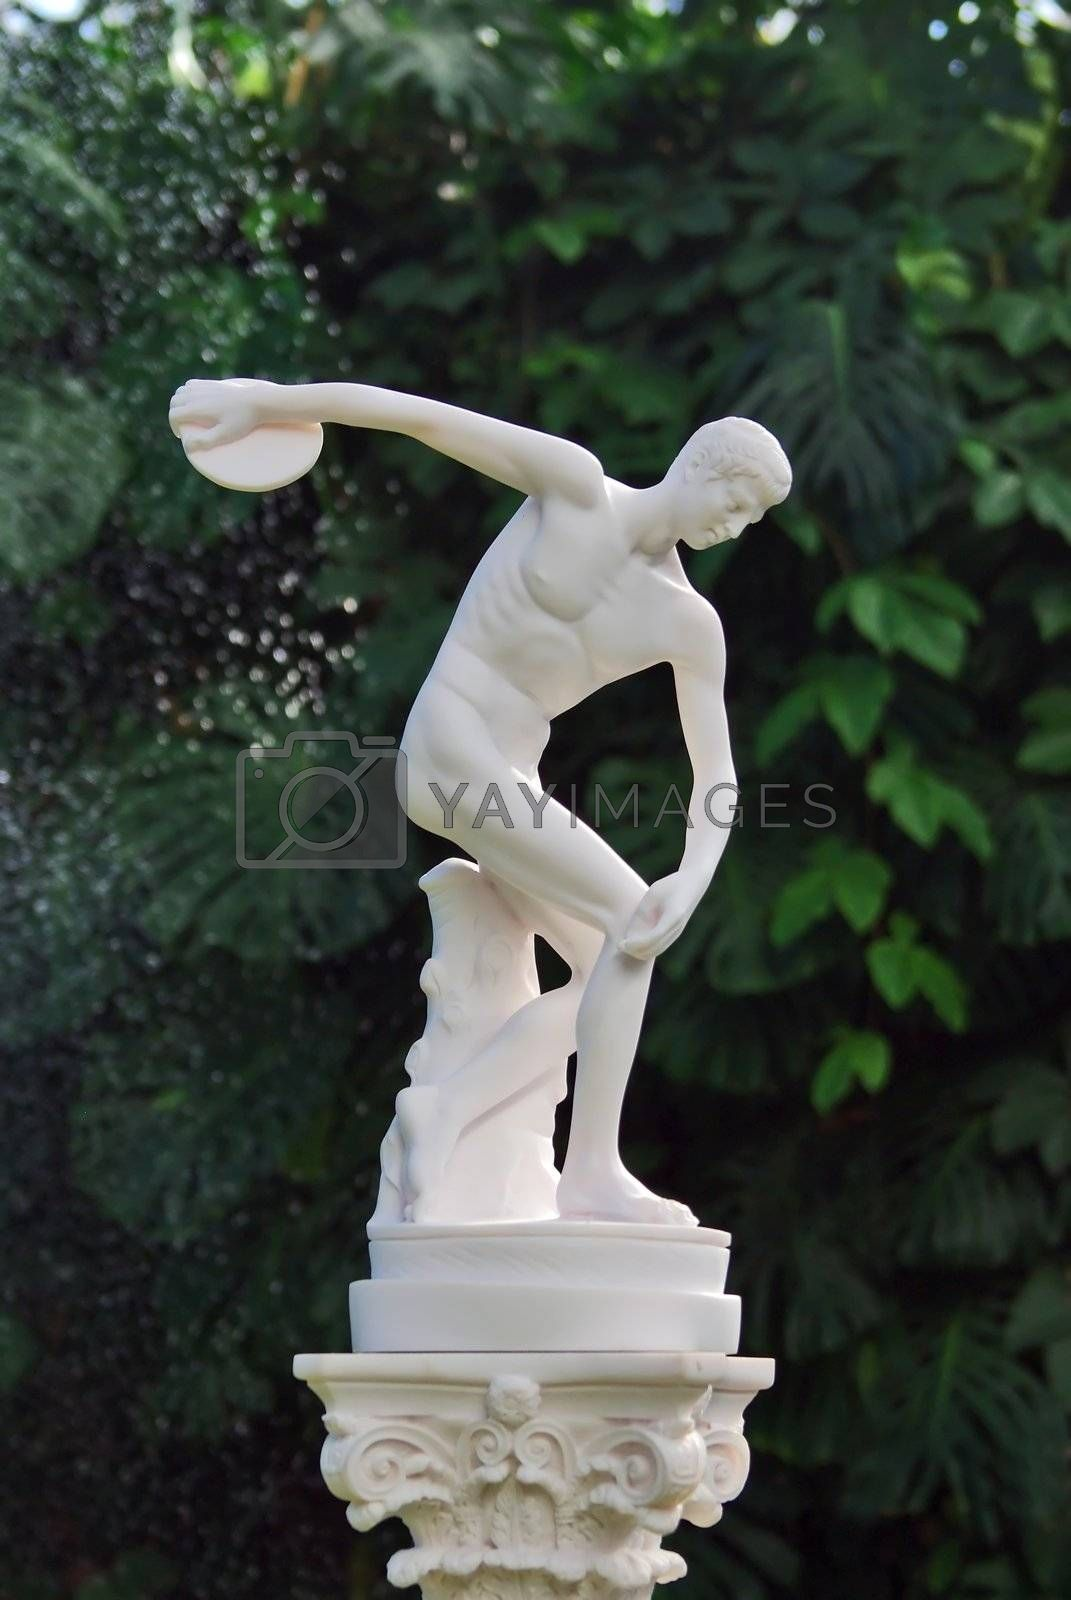 The sculpture of discobolus in park over green leaves